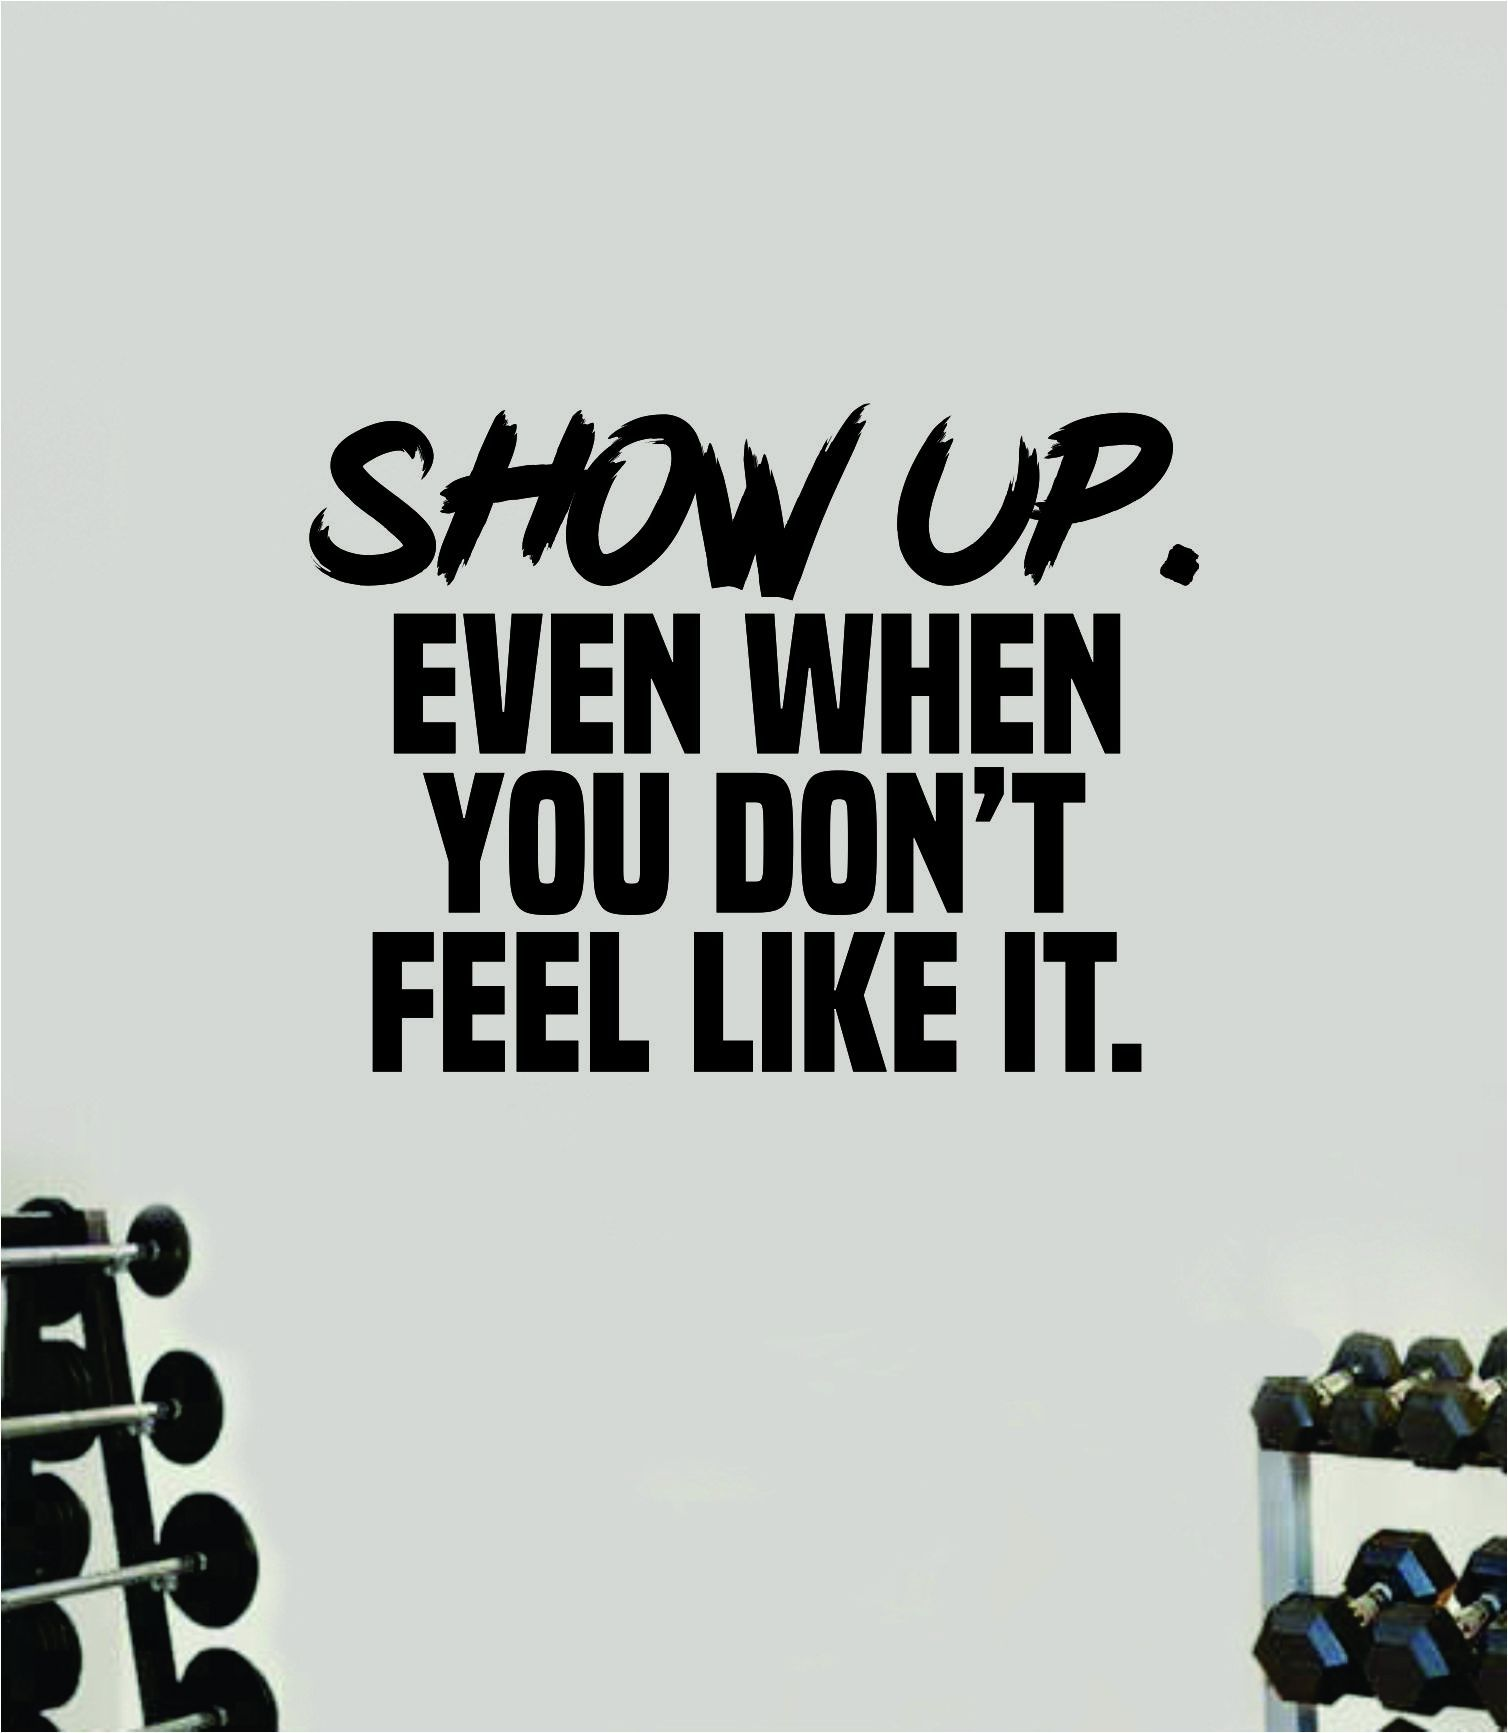 Show Up Quote Wall Decal Sticker Vinyl Art Wall Bedroom Room Home Decor Inspirational Motivational Sports Lift Gym Fitness Girls Train Beast - red